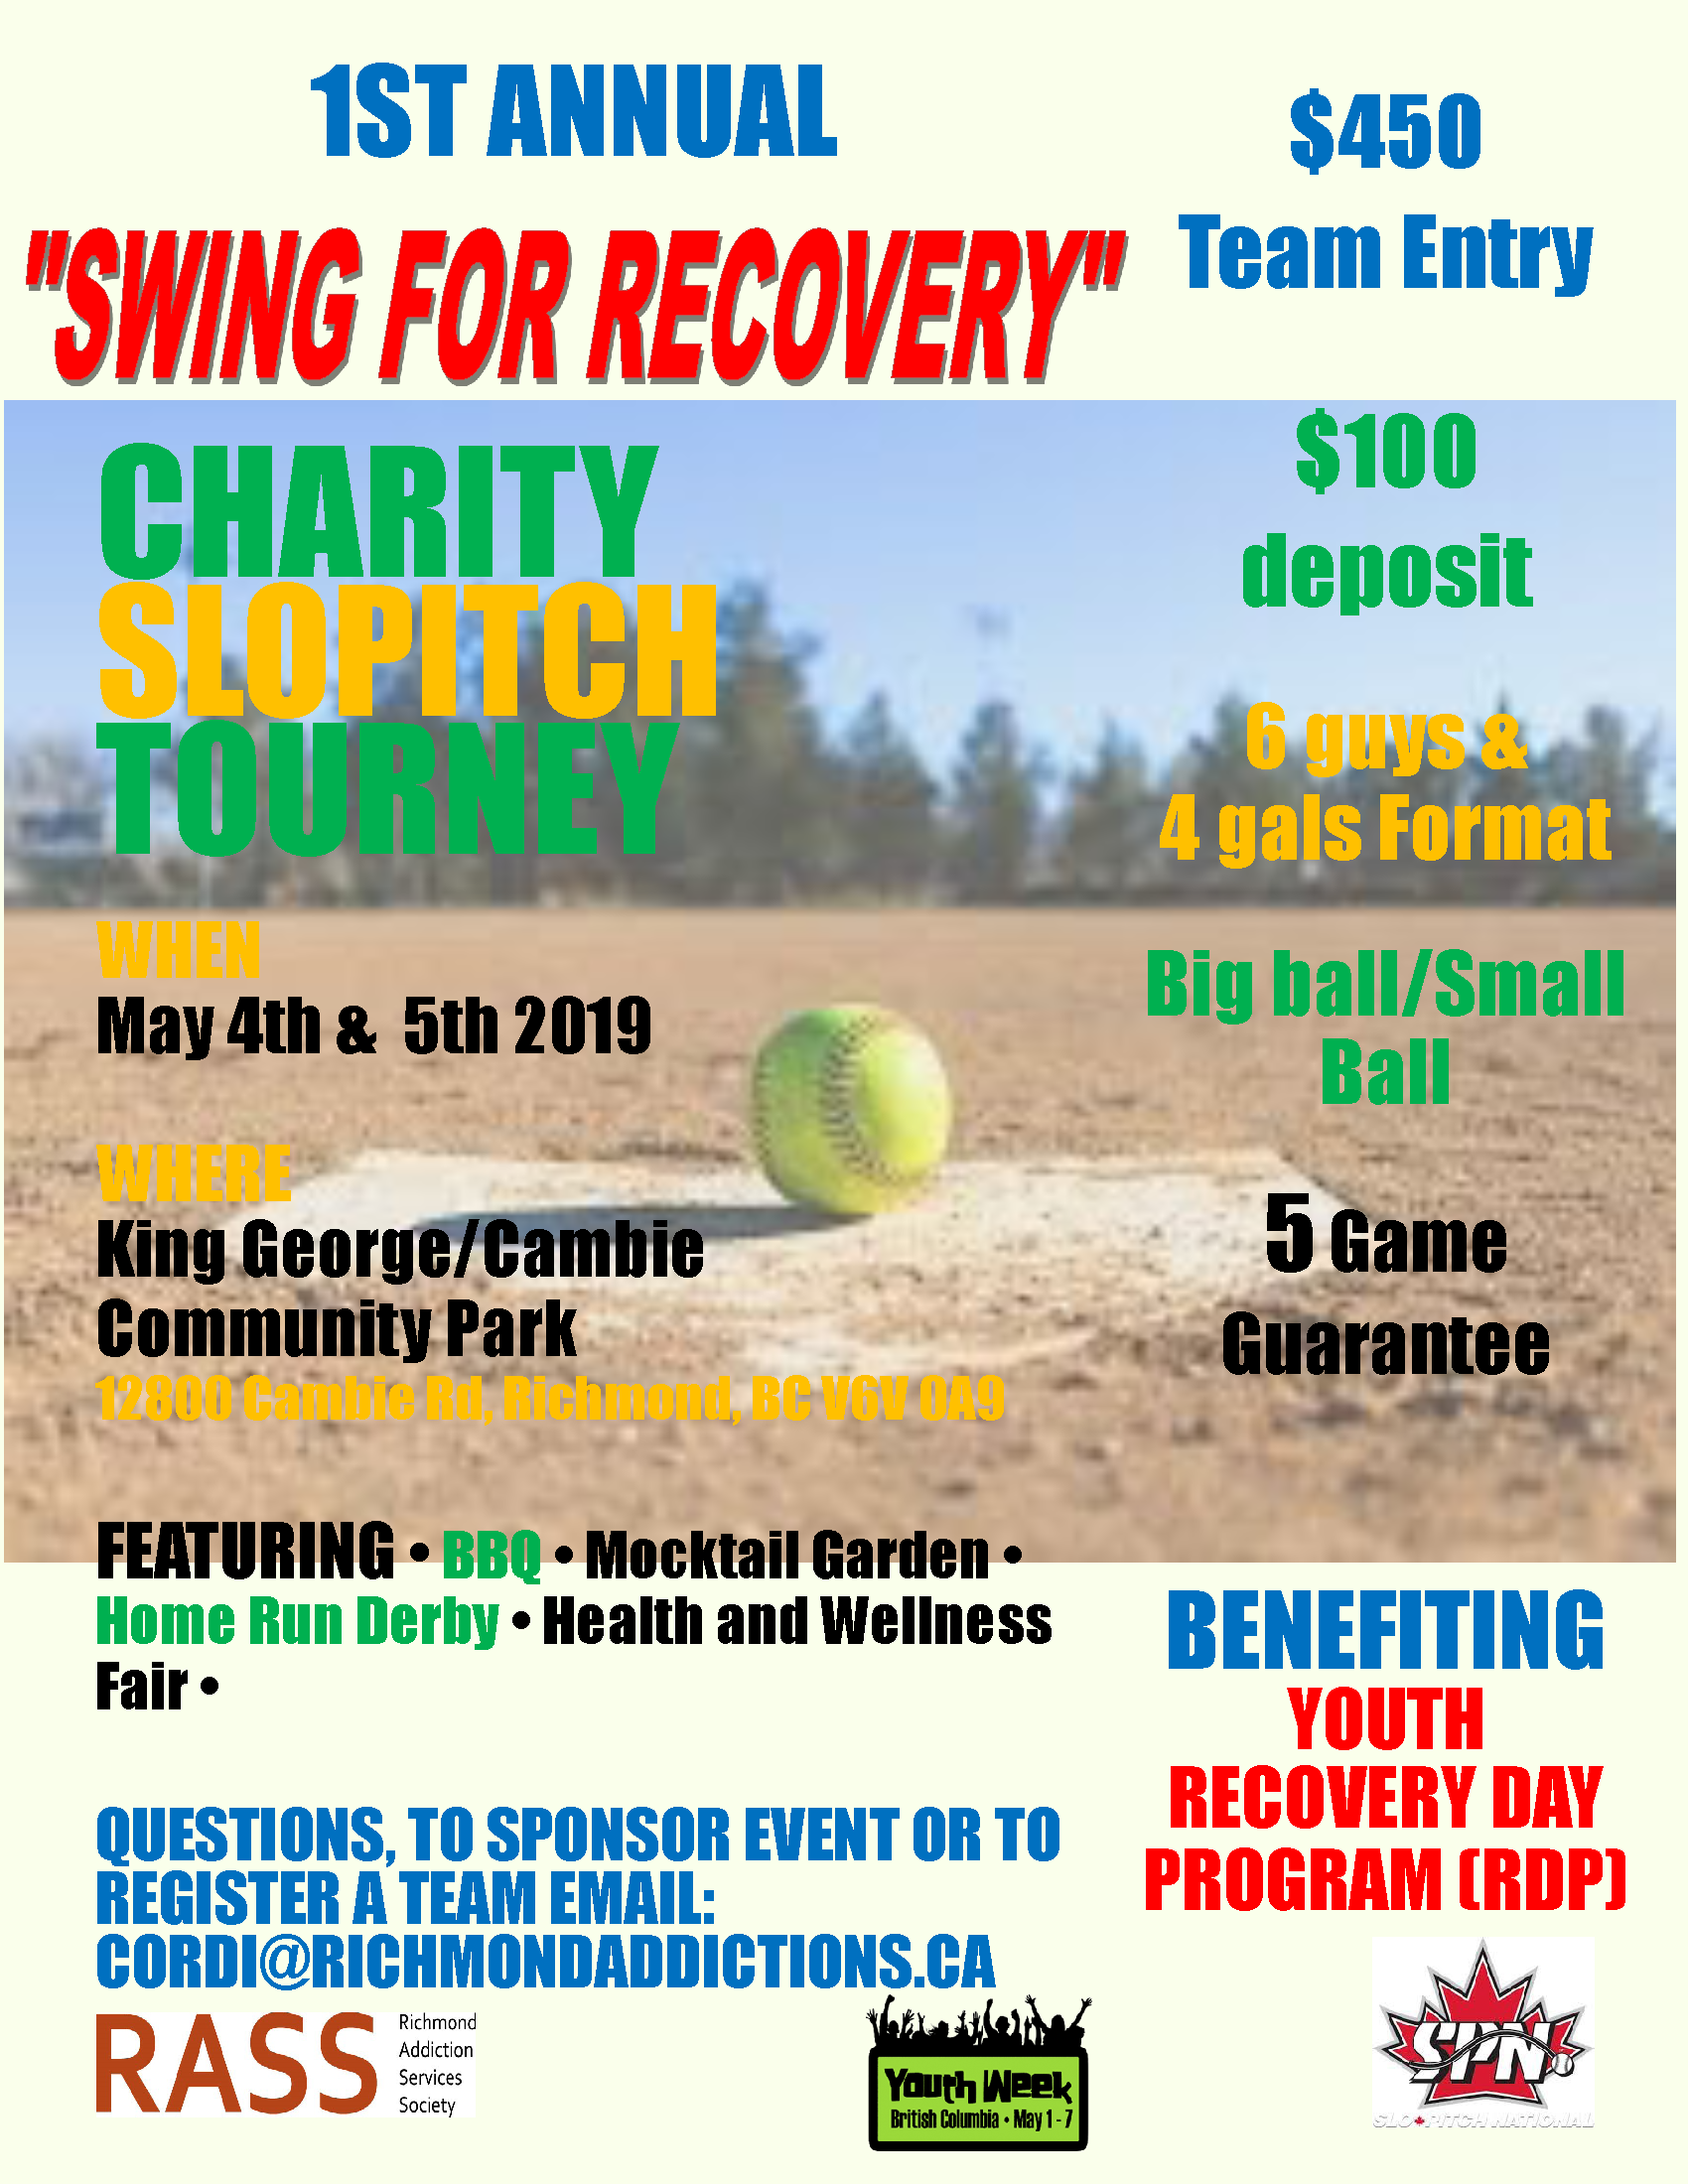 Charity Slowpitch Tourney